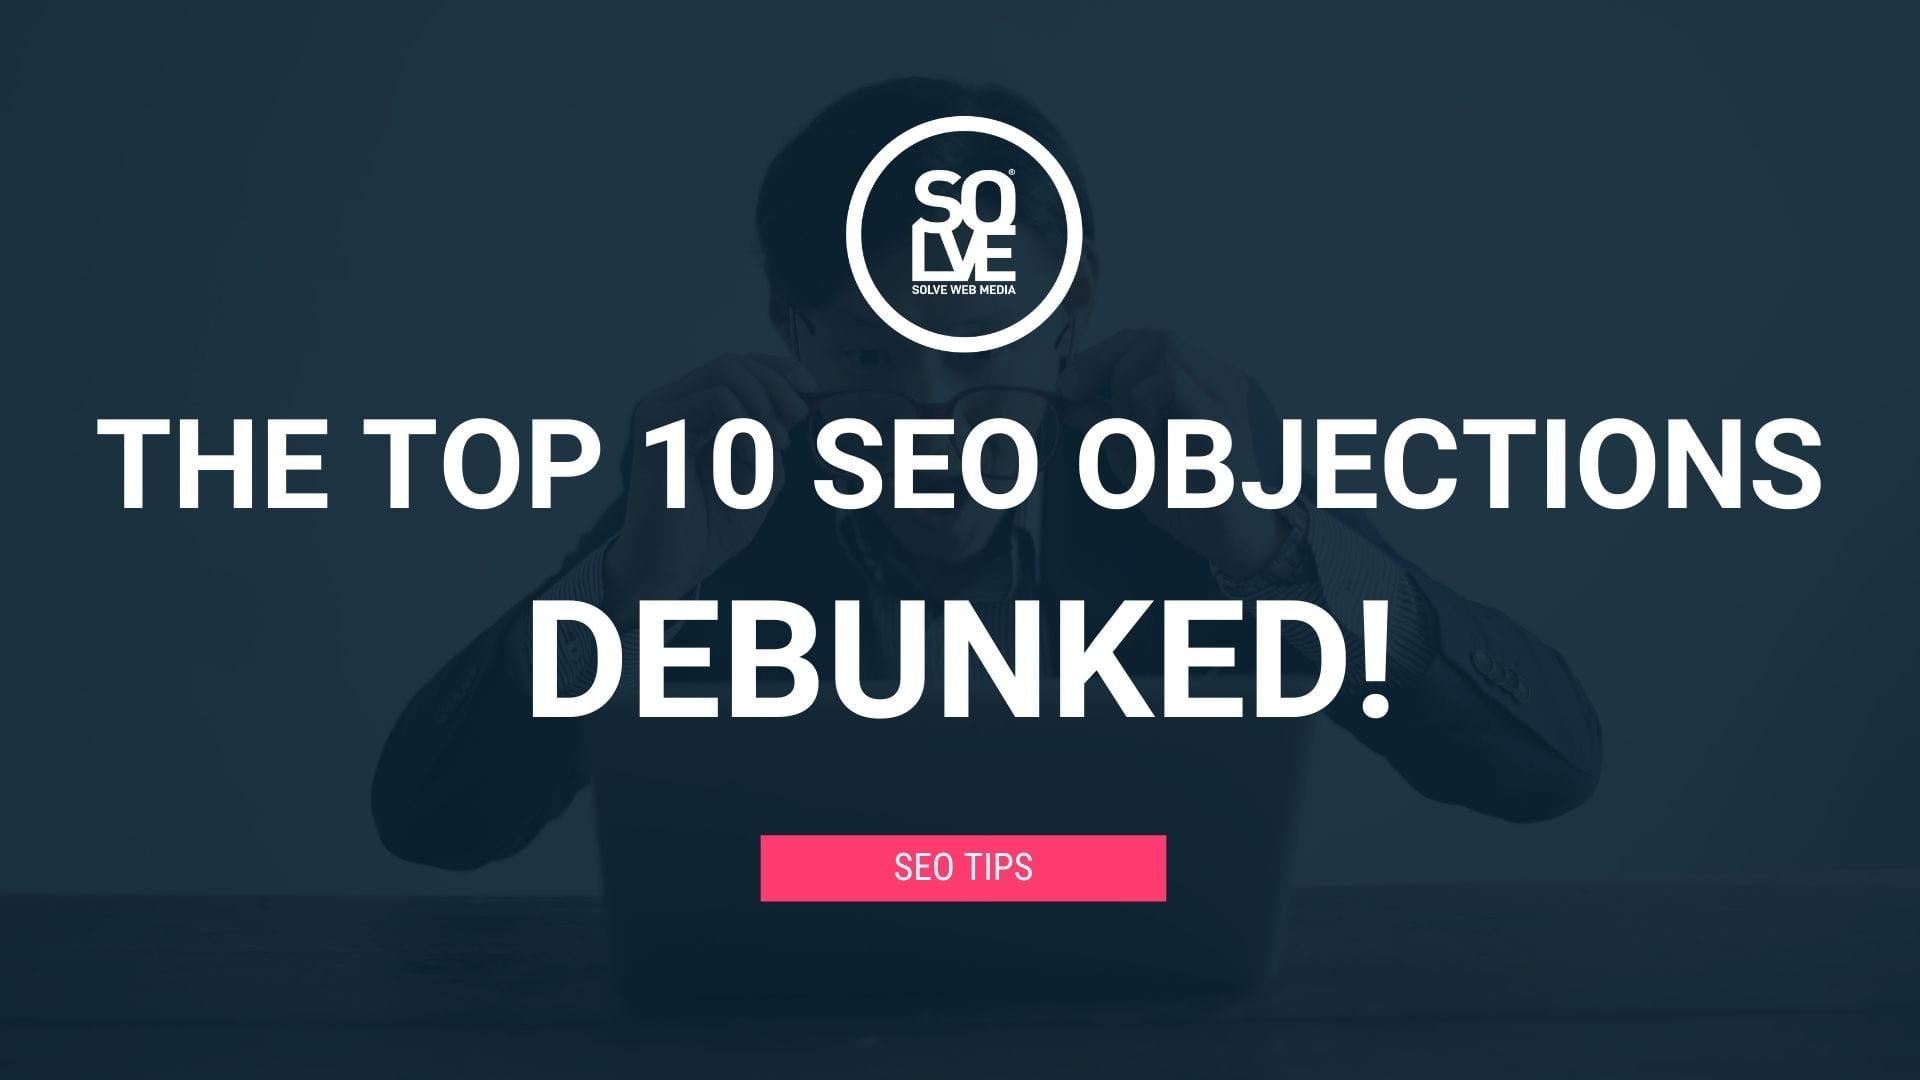 The Top 10 SEO Objections - DEBUNKED 1